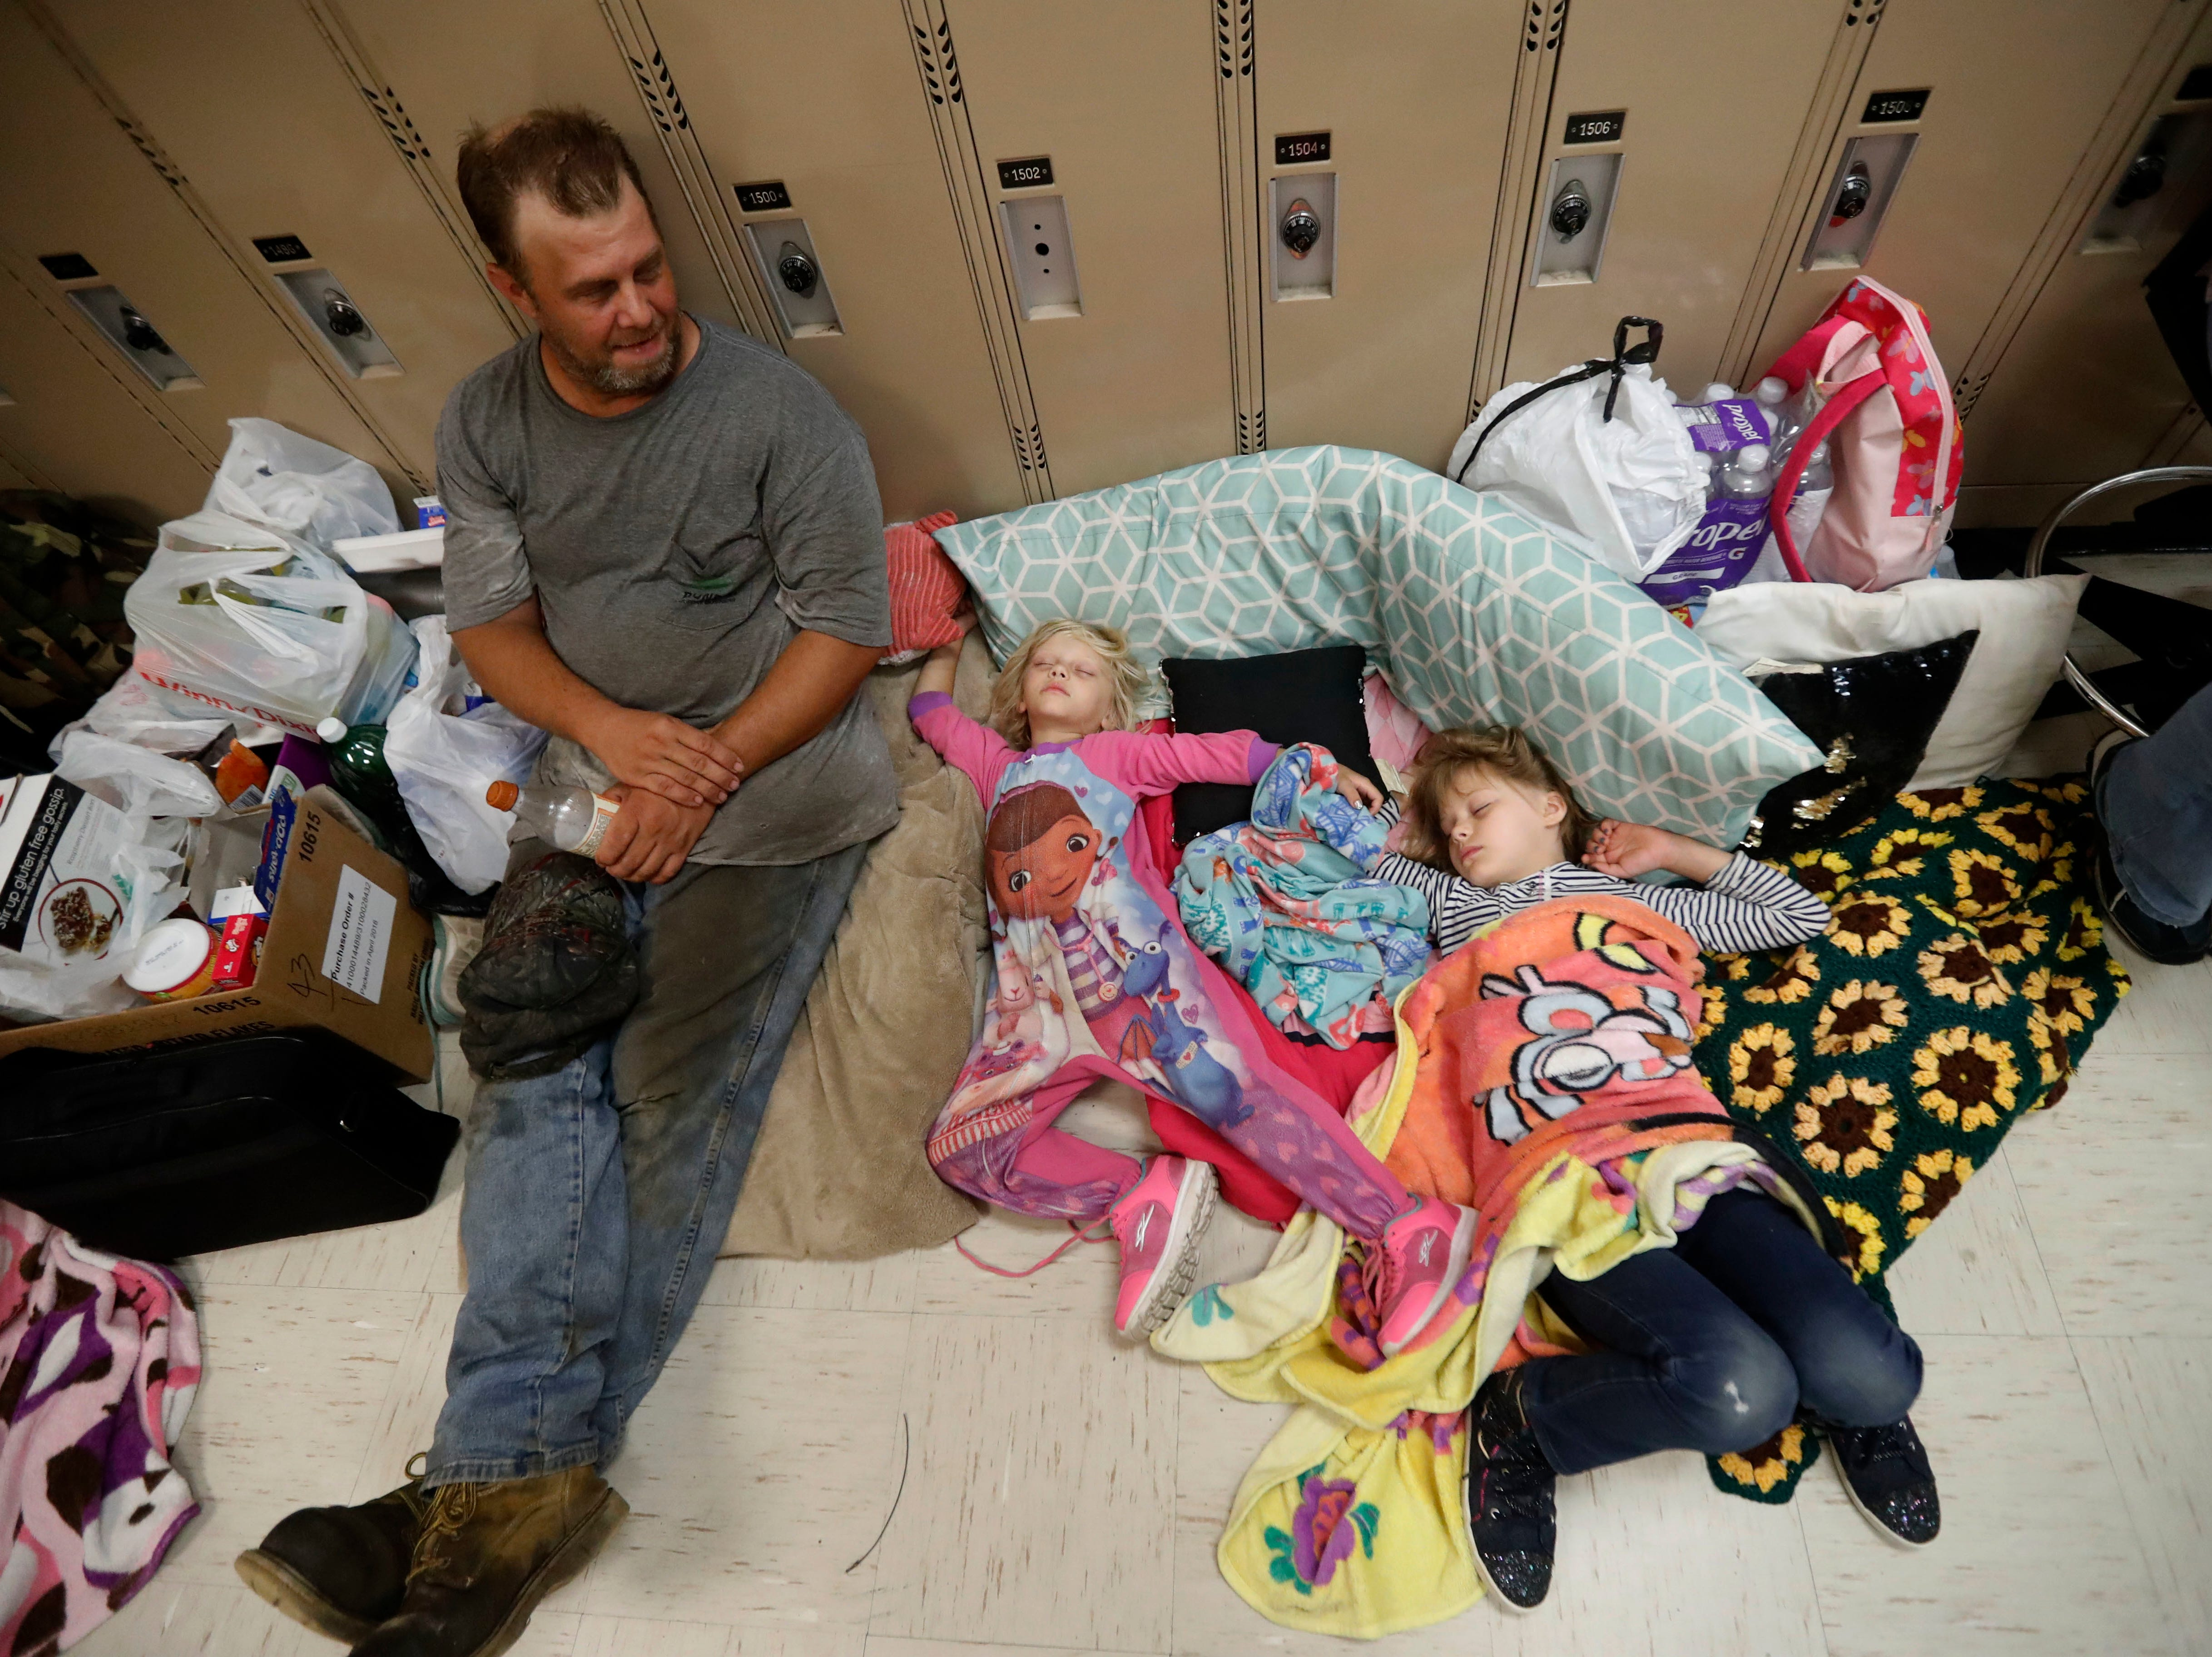 Earnest Sweet sits while his daughters Terri, 4, center, and Anna, 7, sleep at an evacuation shelter set up at Rutherford High School, in advance of Hurricane Michael, which is expected to make landfall today, in Panama City Beach, Fla., Wednesday, Oct. 10, 2018.